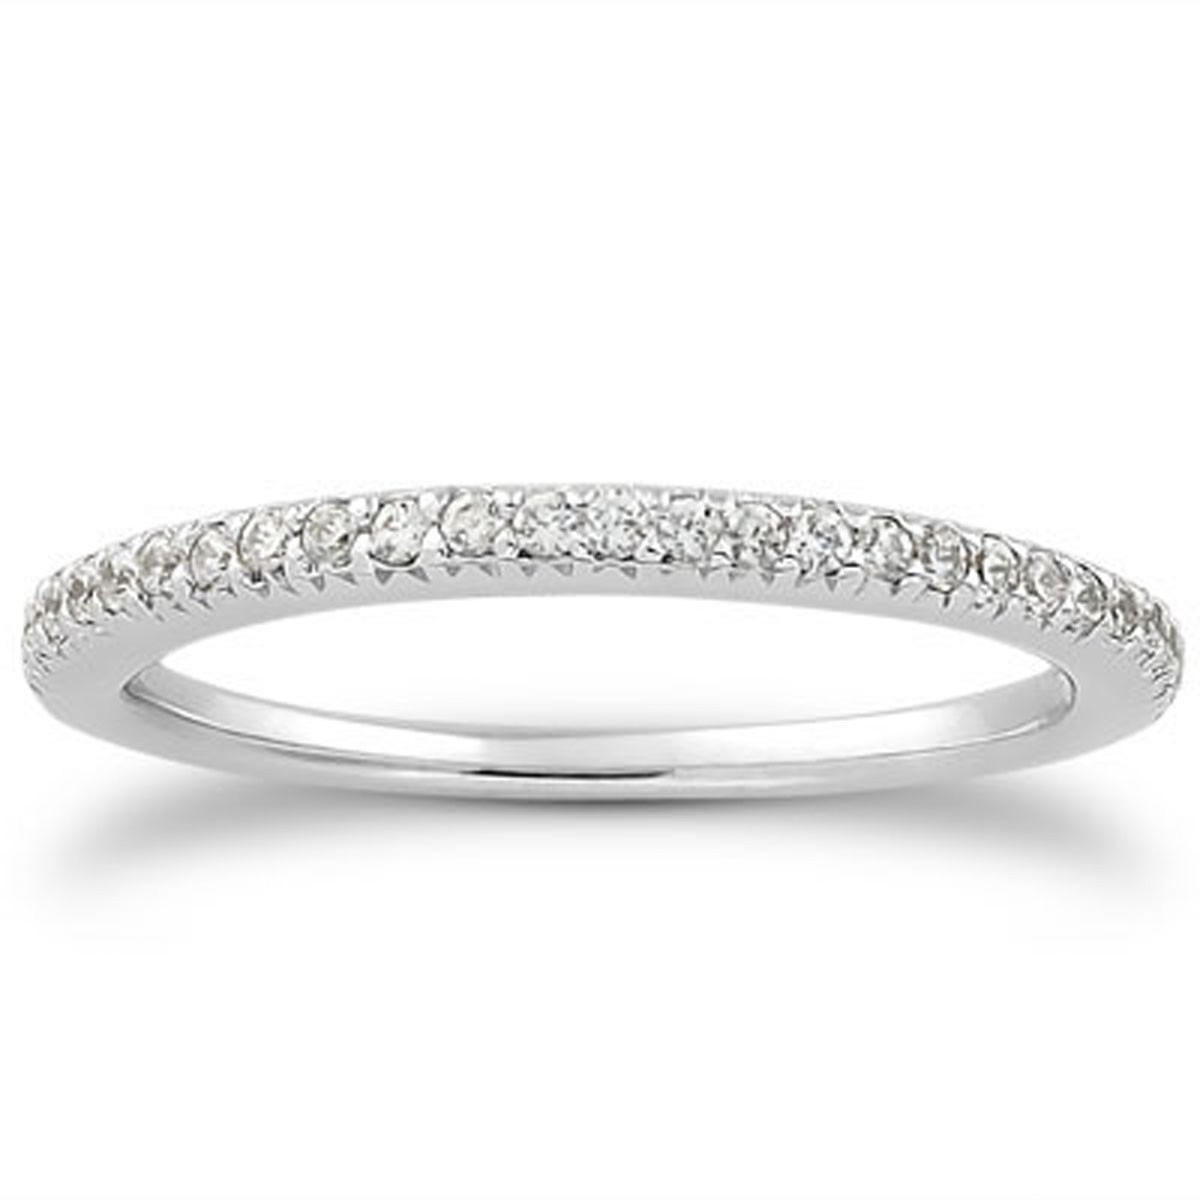 about 14k white gold fancy engraved pave diamond wedding ring band